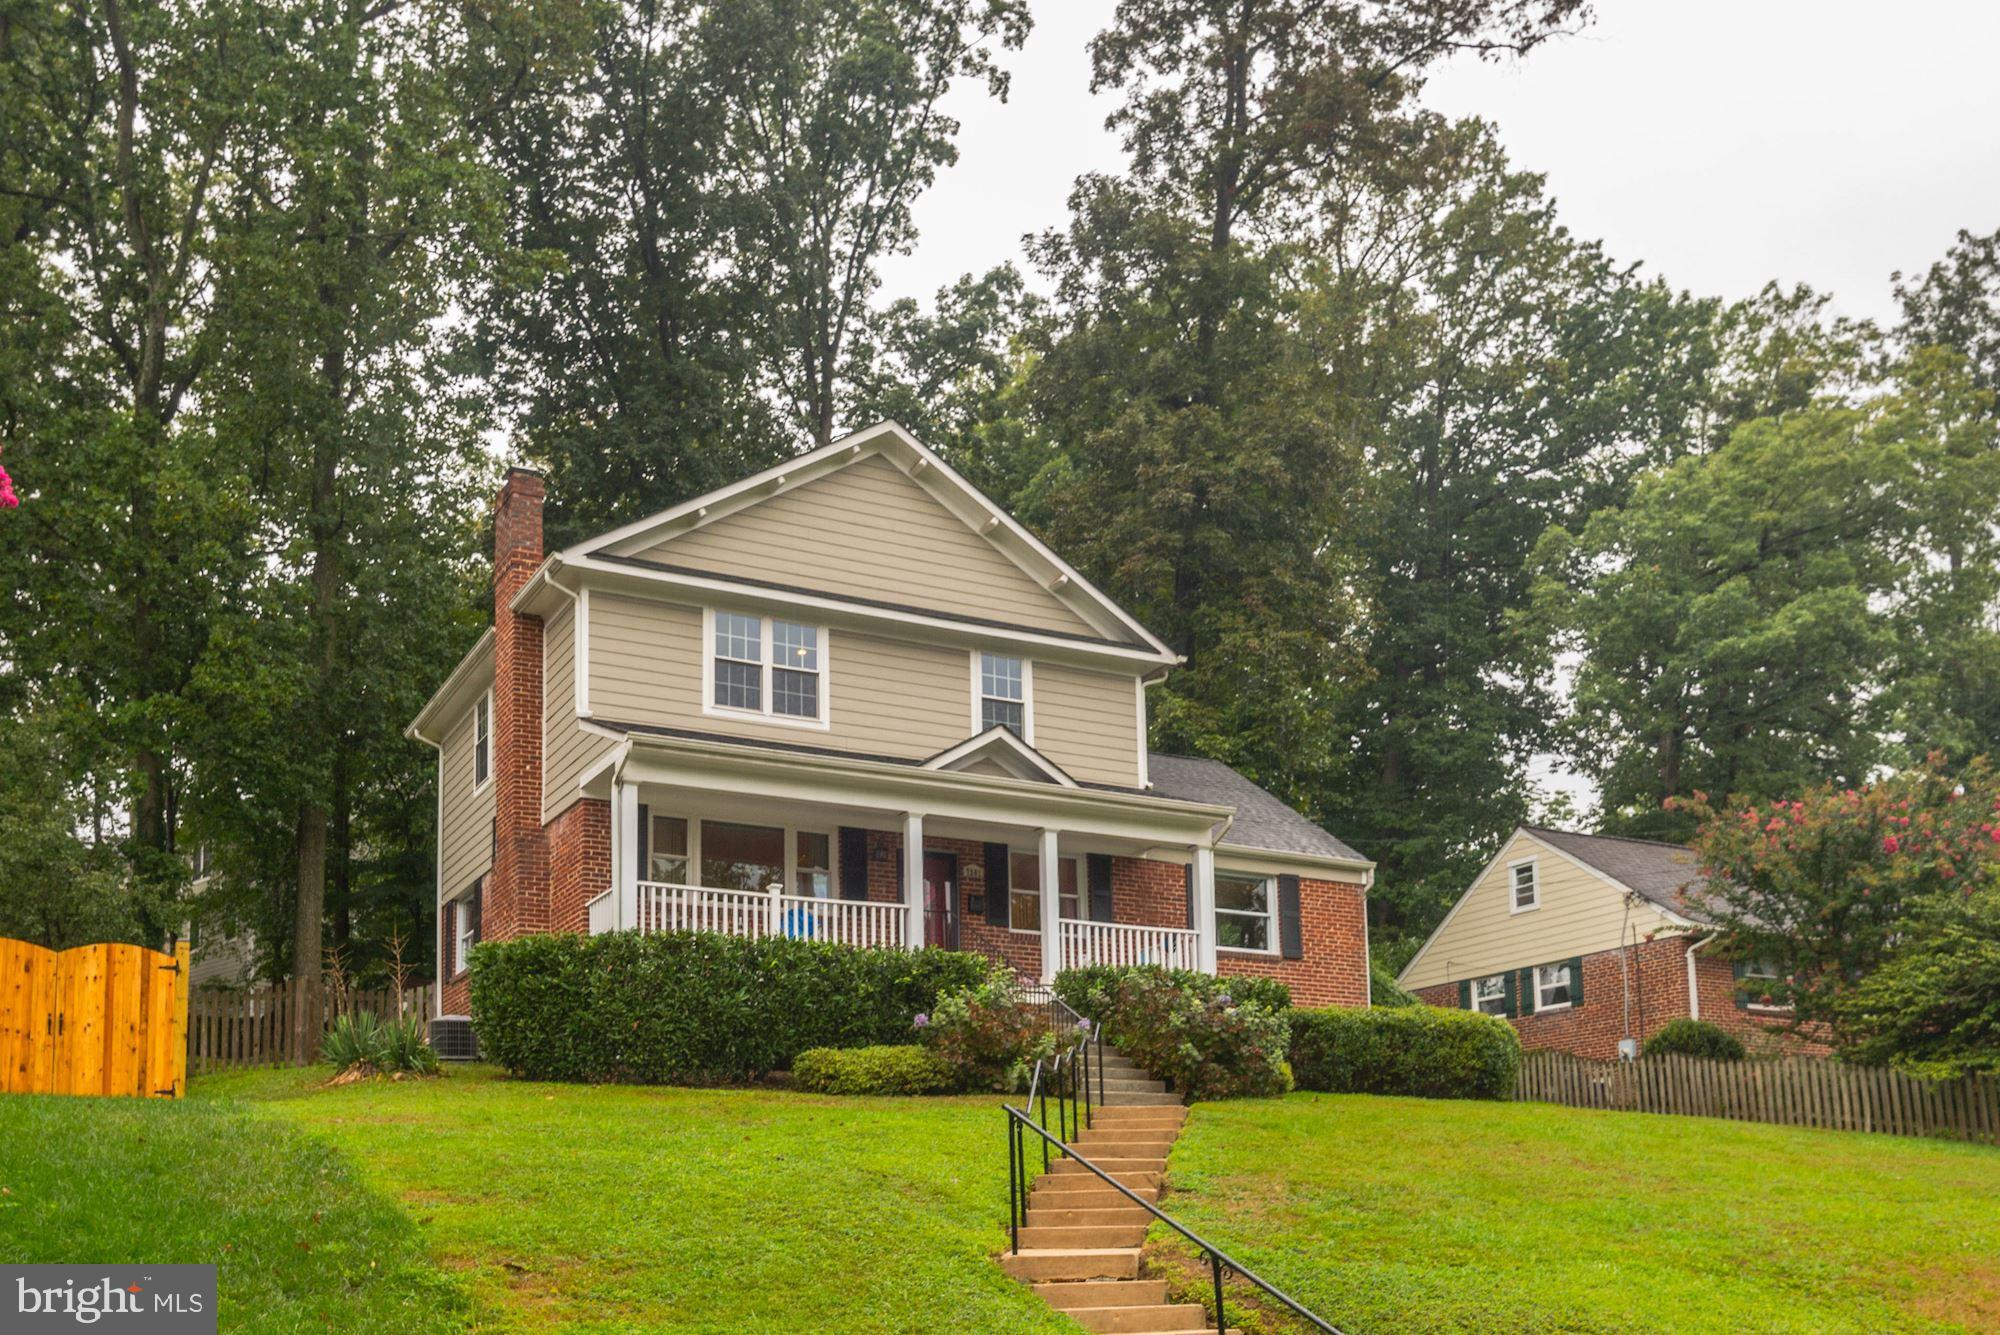 7301 WOODLEY PLACE, FALLS CHURCH, VA 22046